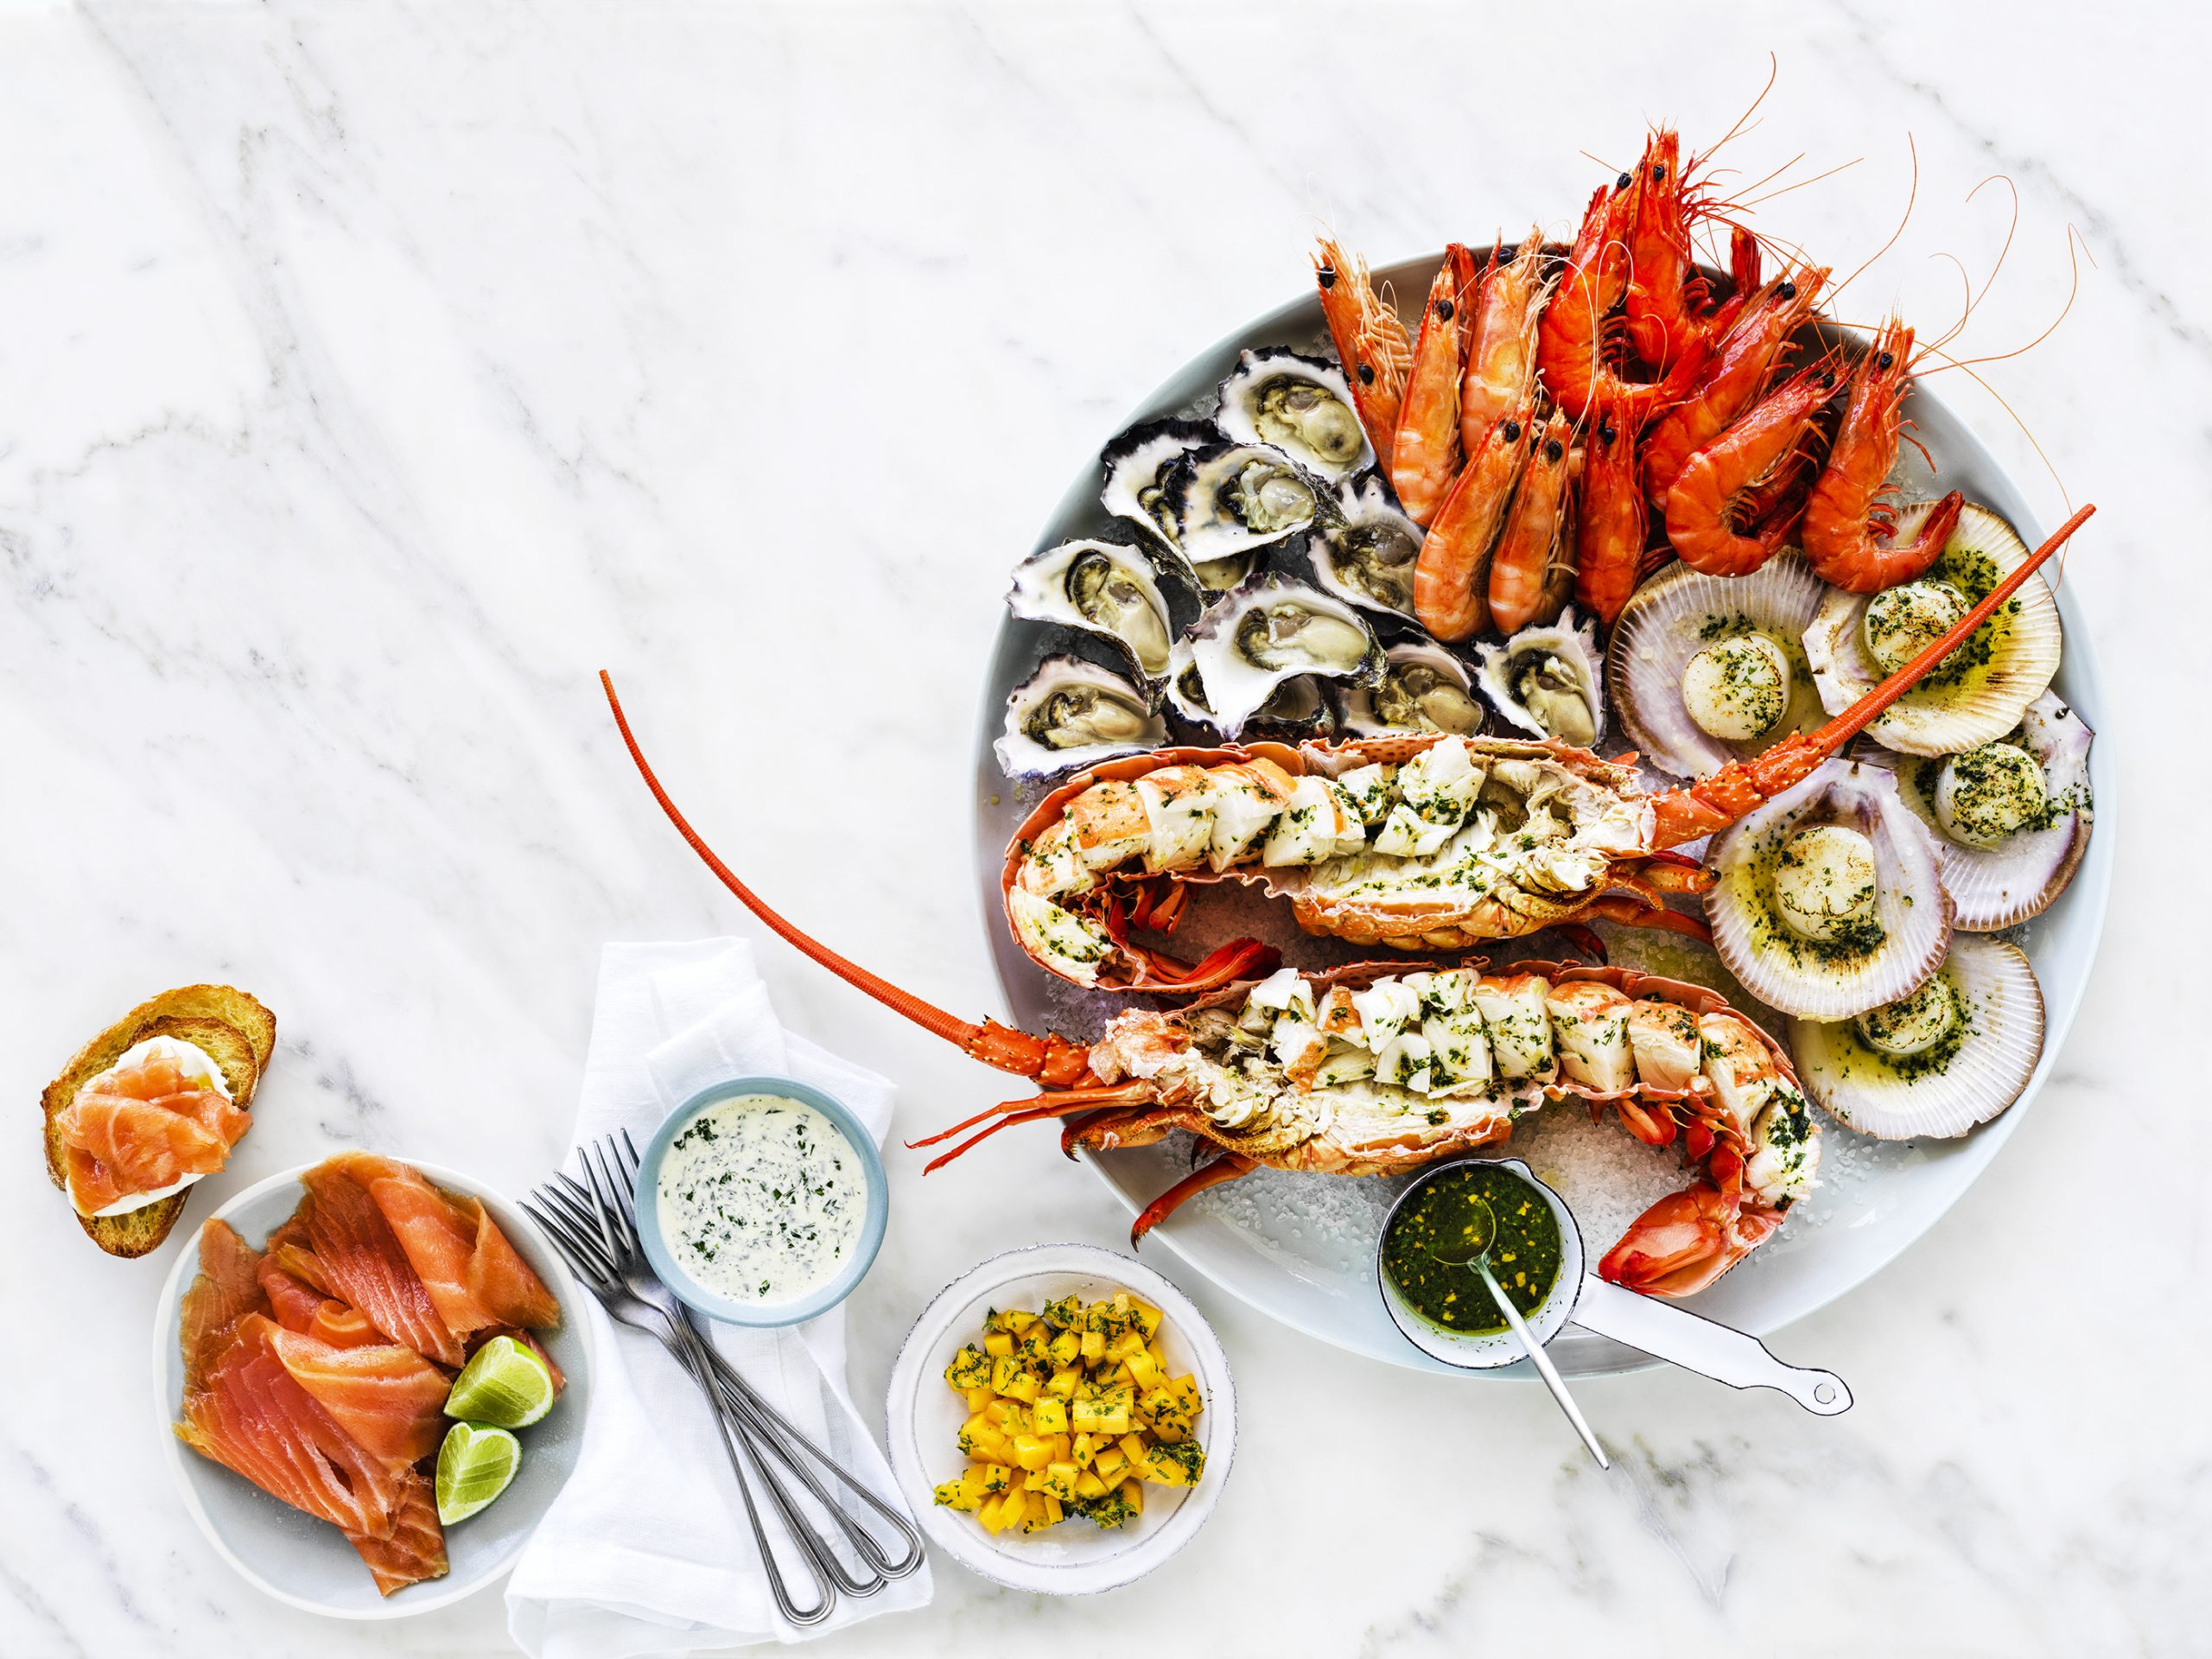 Great Australian Seafood prices and availability for Easter 2021